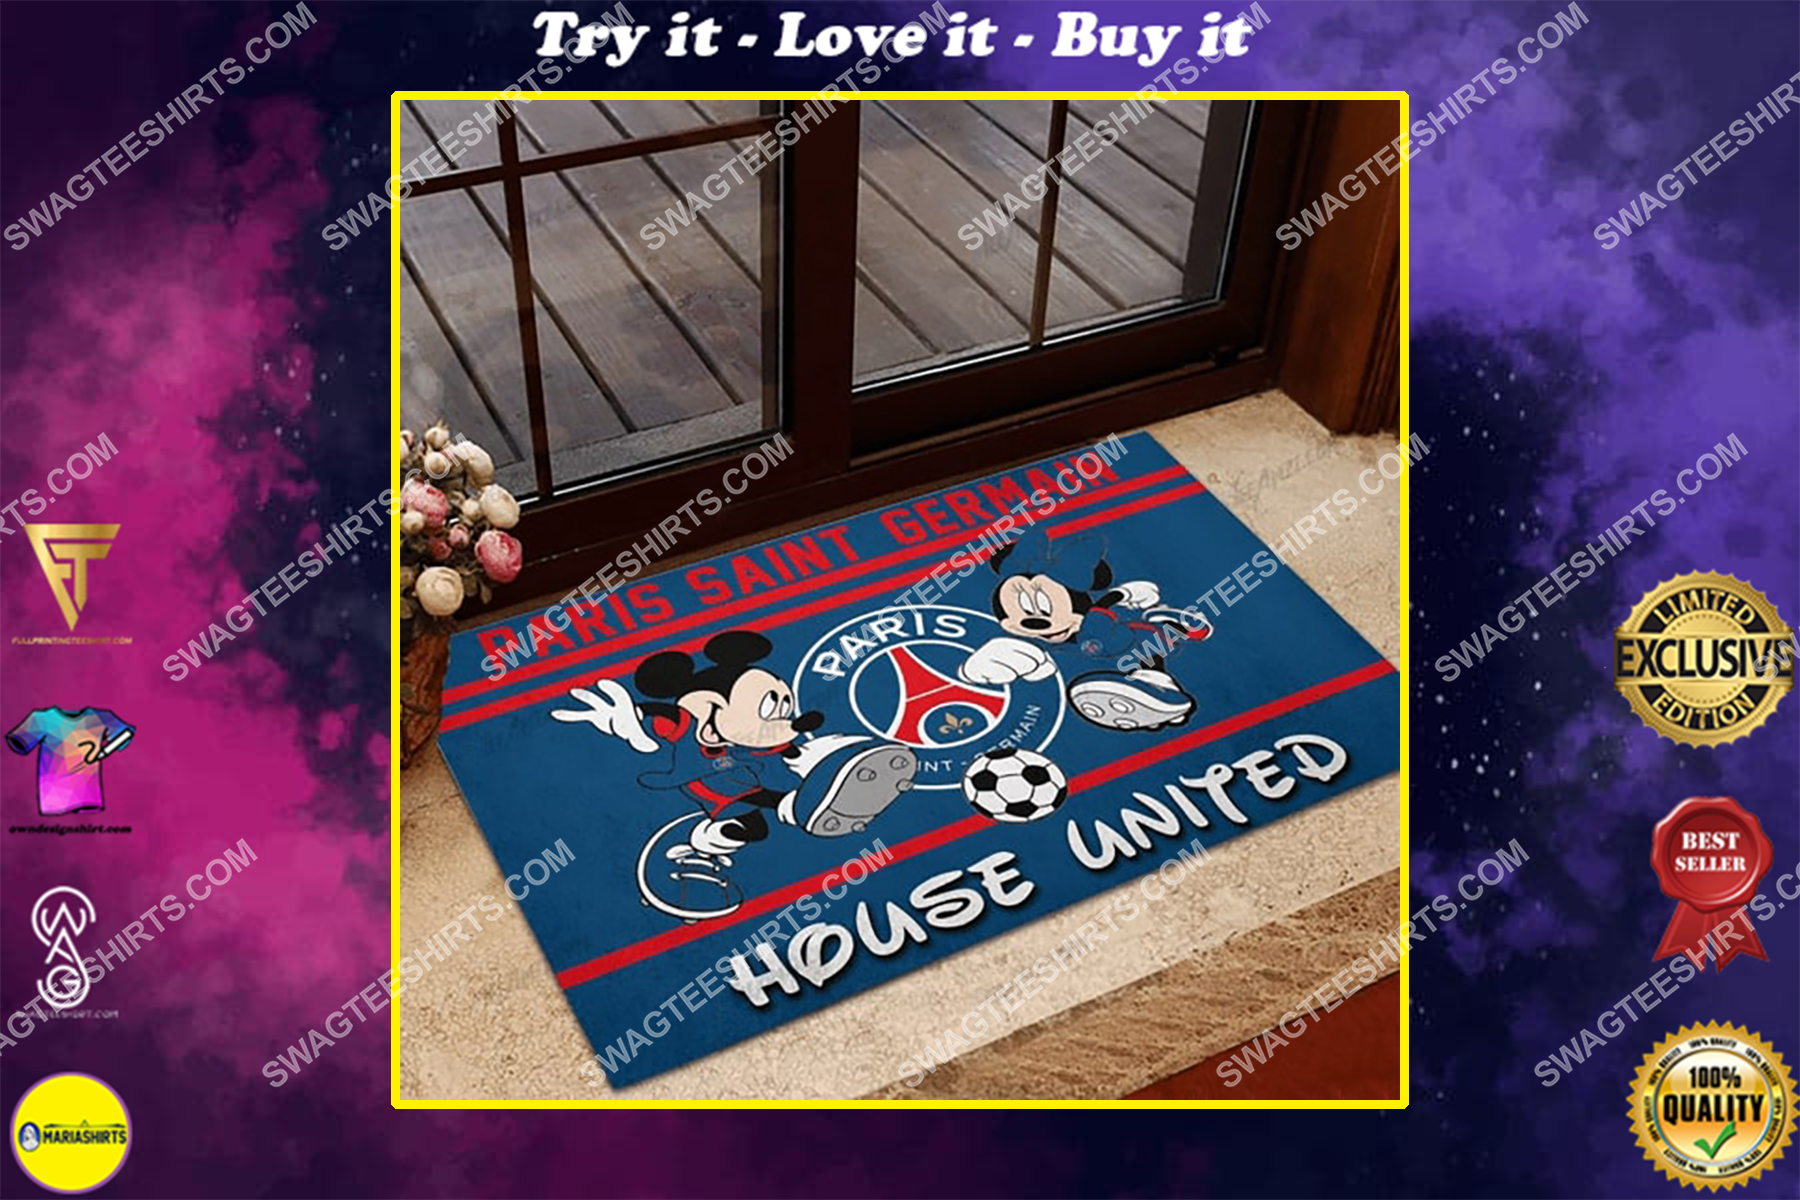 paris saint germain house united mickey mouse and minnie mouse doormat